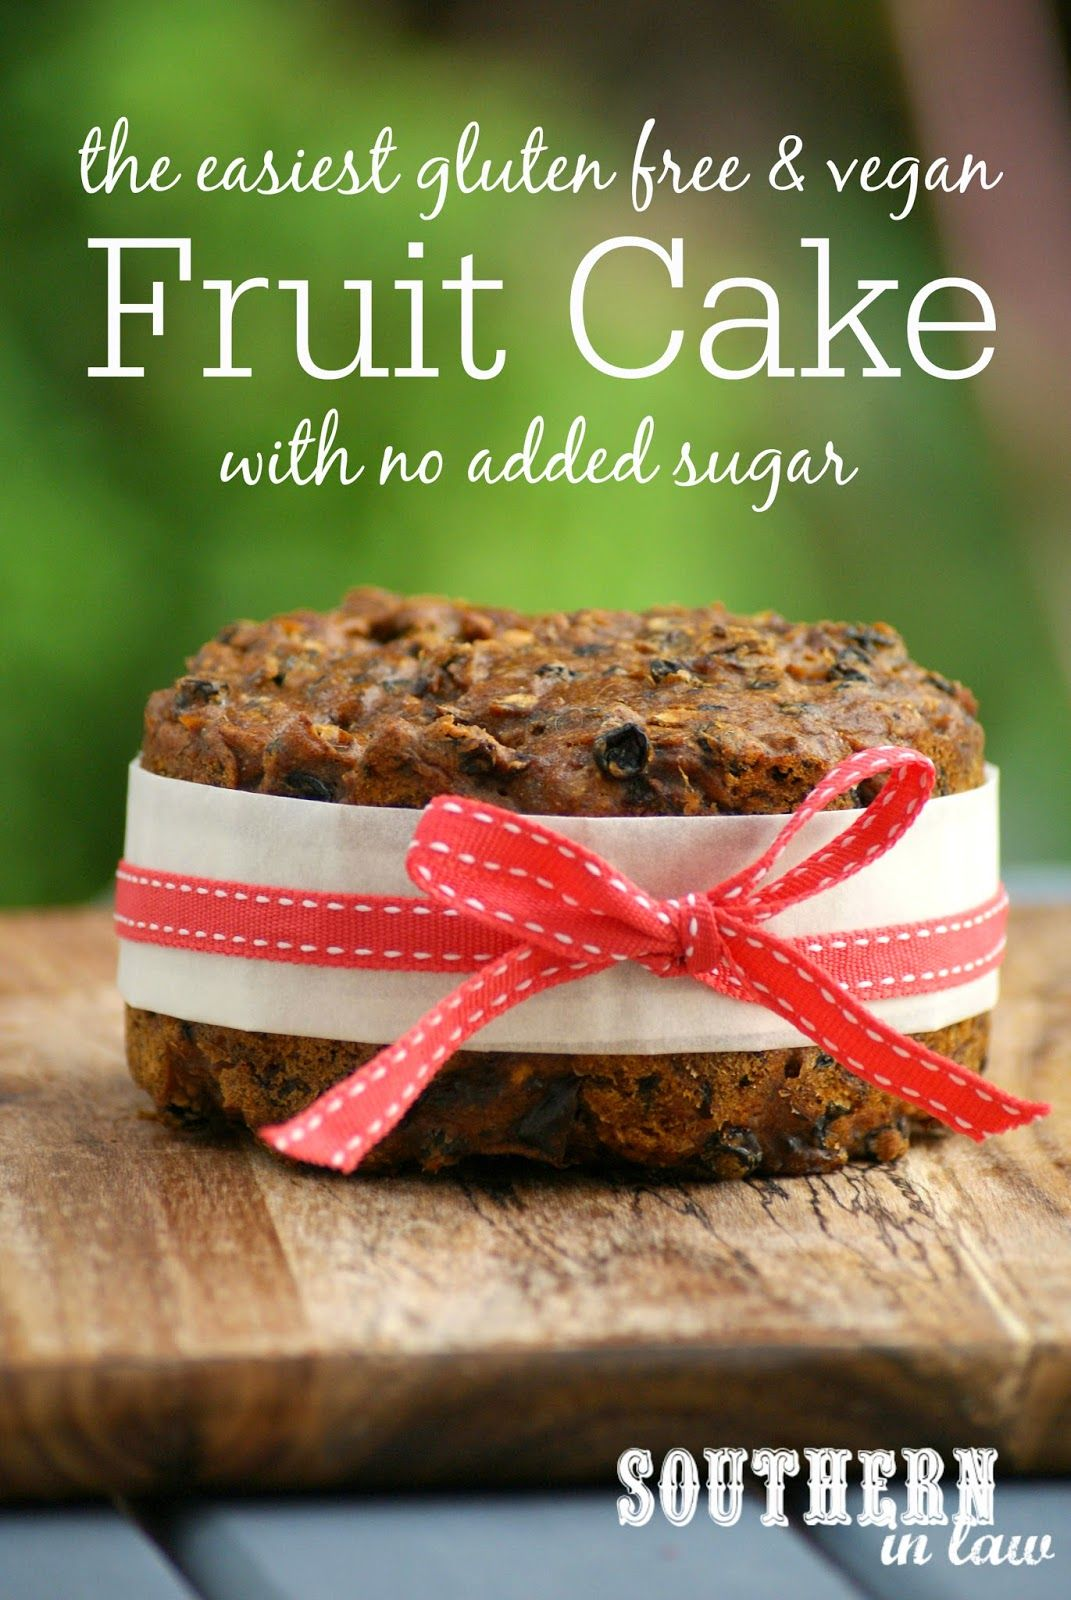 Recipe The Easiest Gluten Free & Vegan Fruit Cake with No